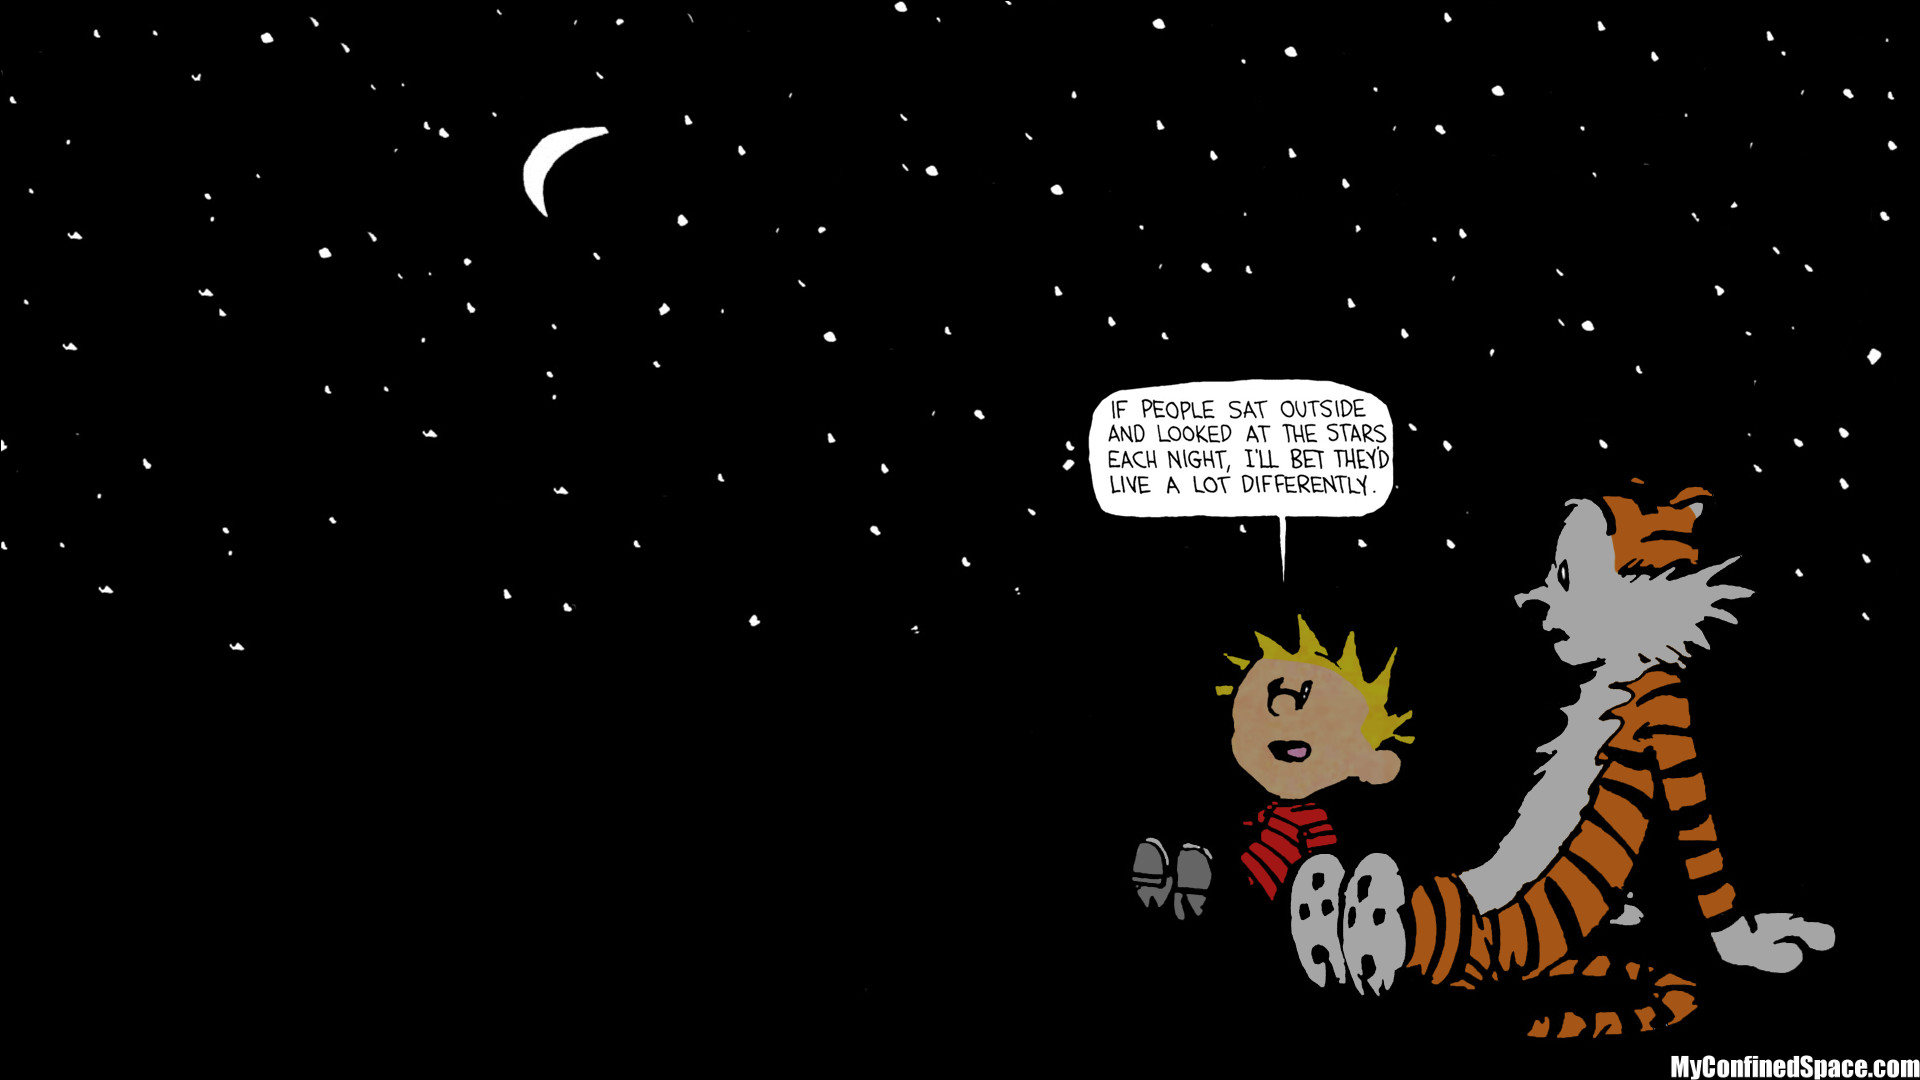 1920x1080 calvin hobbes stars quote - Google Search